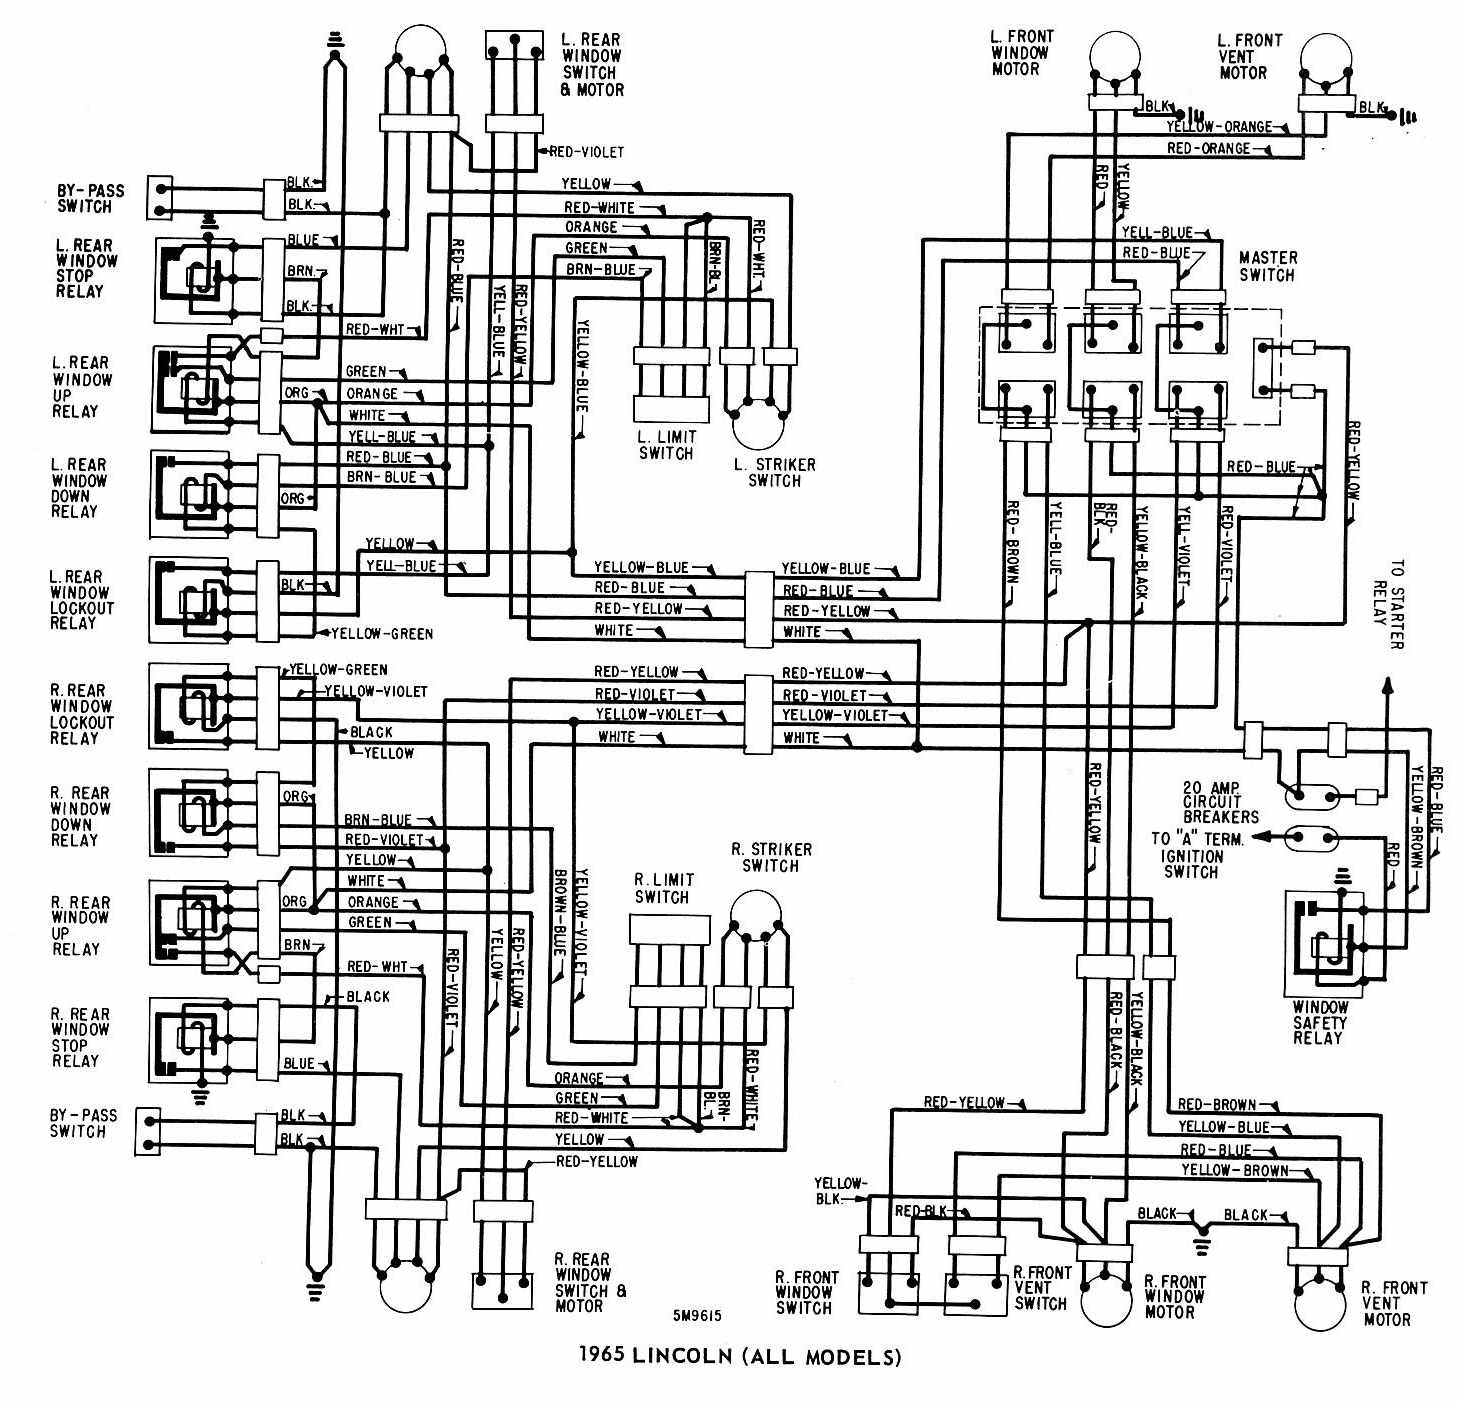 Lincoln     All Models  1965 Windows    Wiring       Diagram      All about    Wiring       Diagrams